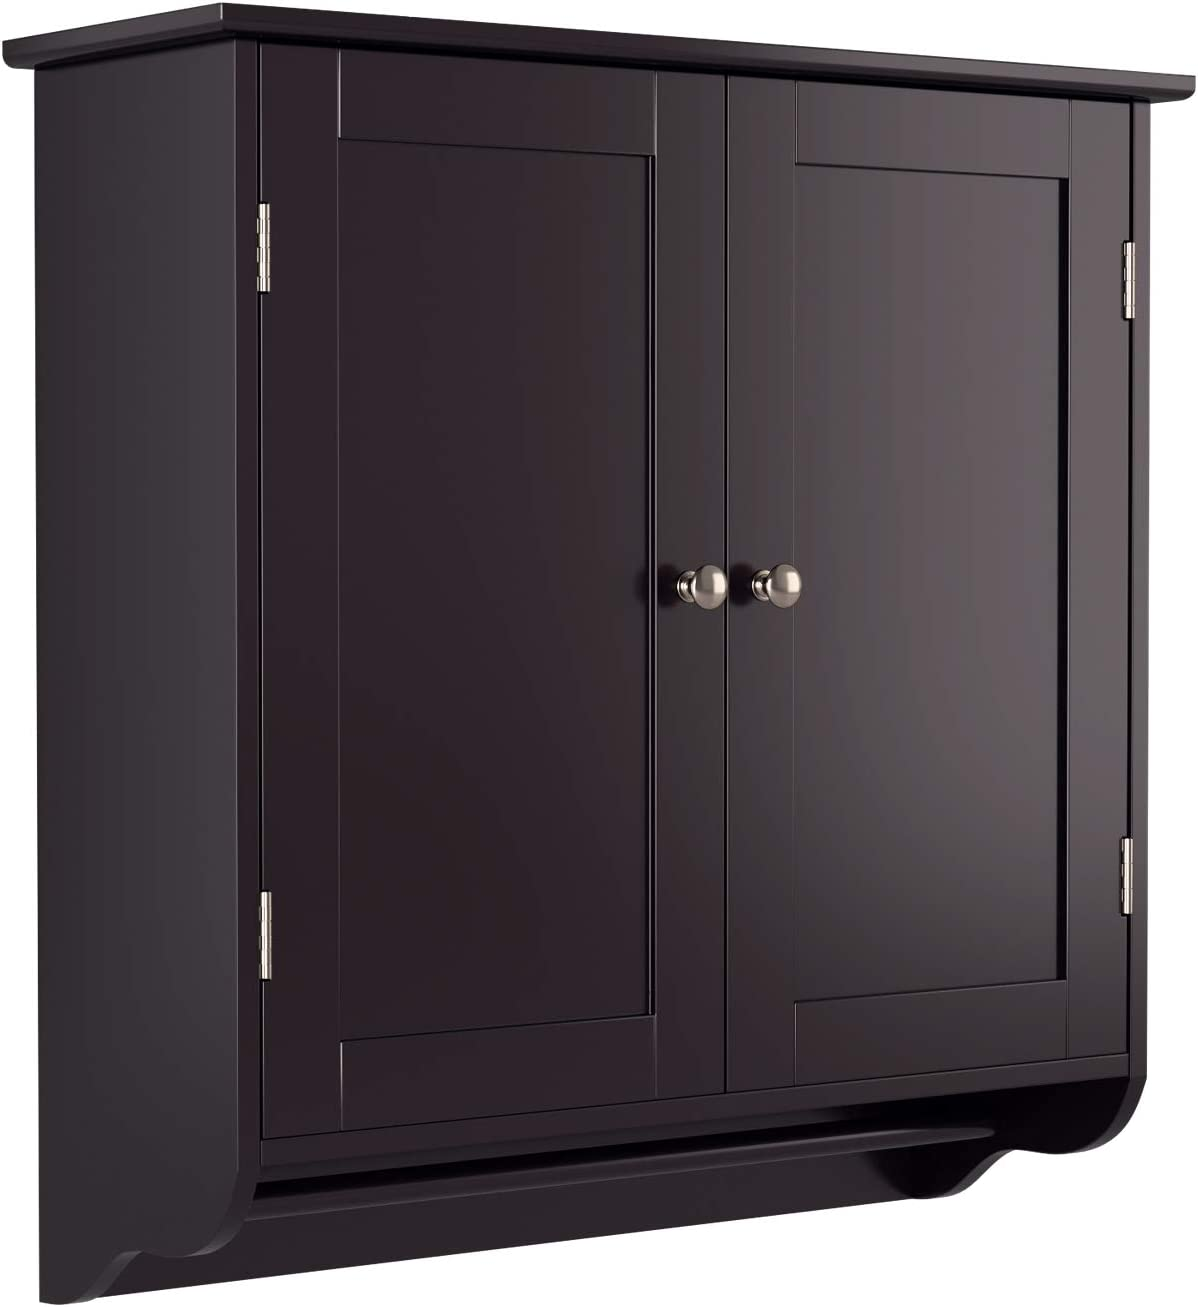 Amazon Com Homfa Bathroom Wall Cabinet Over The Toilet Space Saver Storage Cabinet Kitchen Medicine Cabinet Doule Door Cupboard With Adjustable Shelf And Towel Bar Dark Brown Kitchen Dining